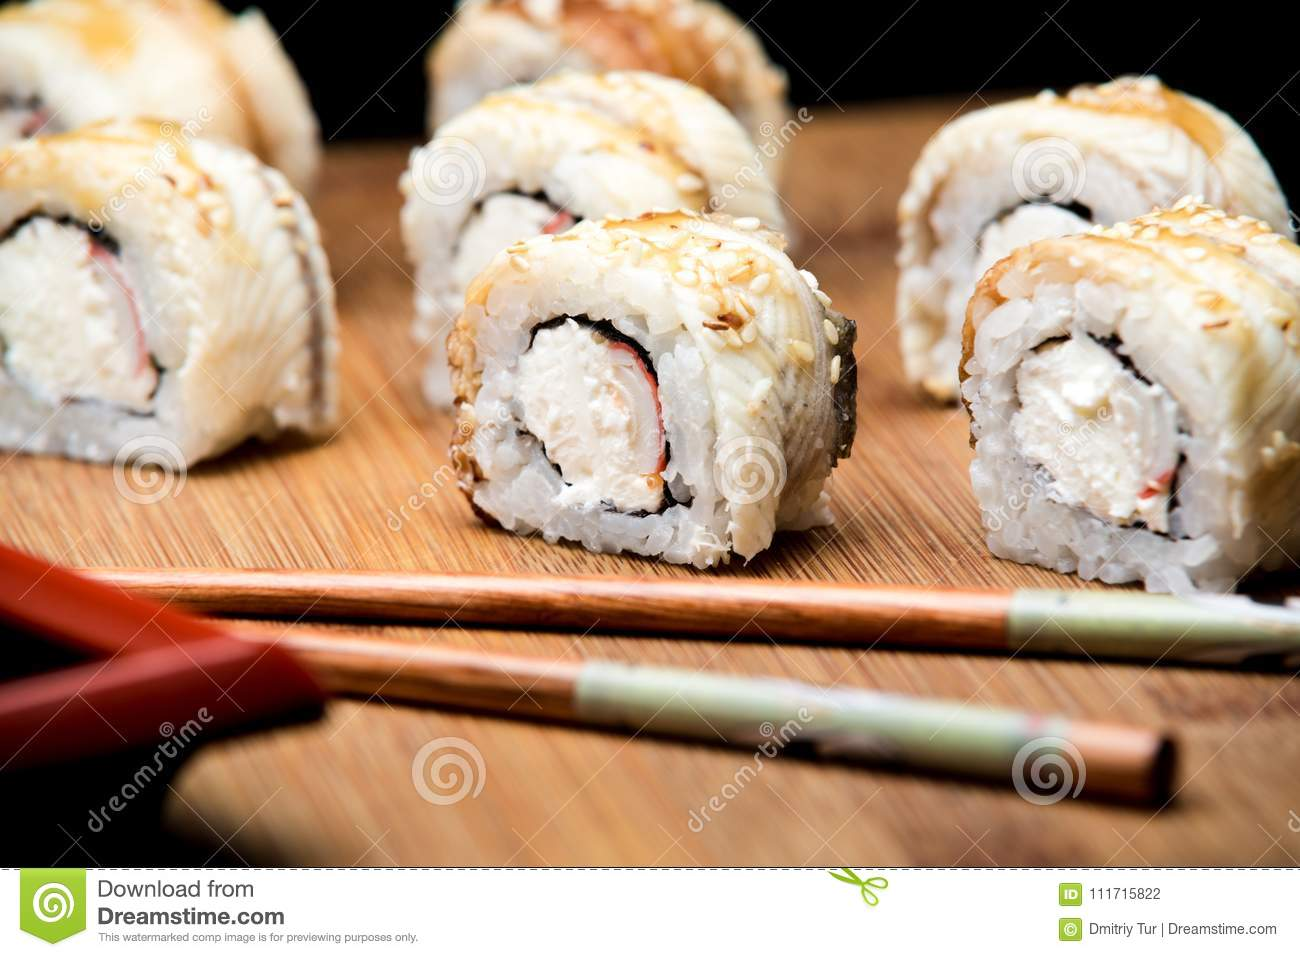 Rolls at home - a great way to please the guests 98